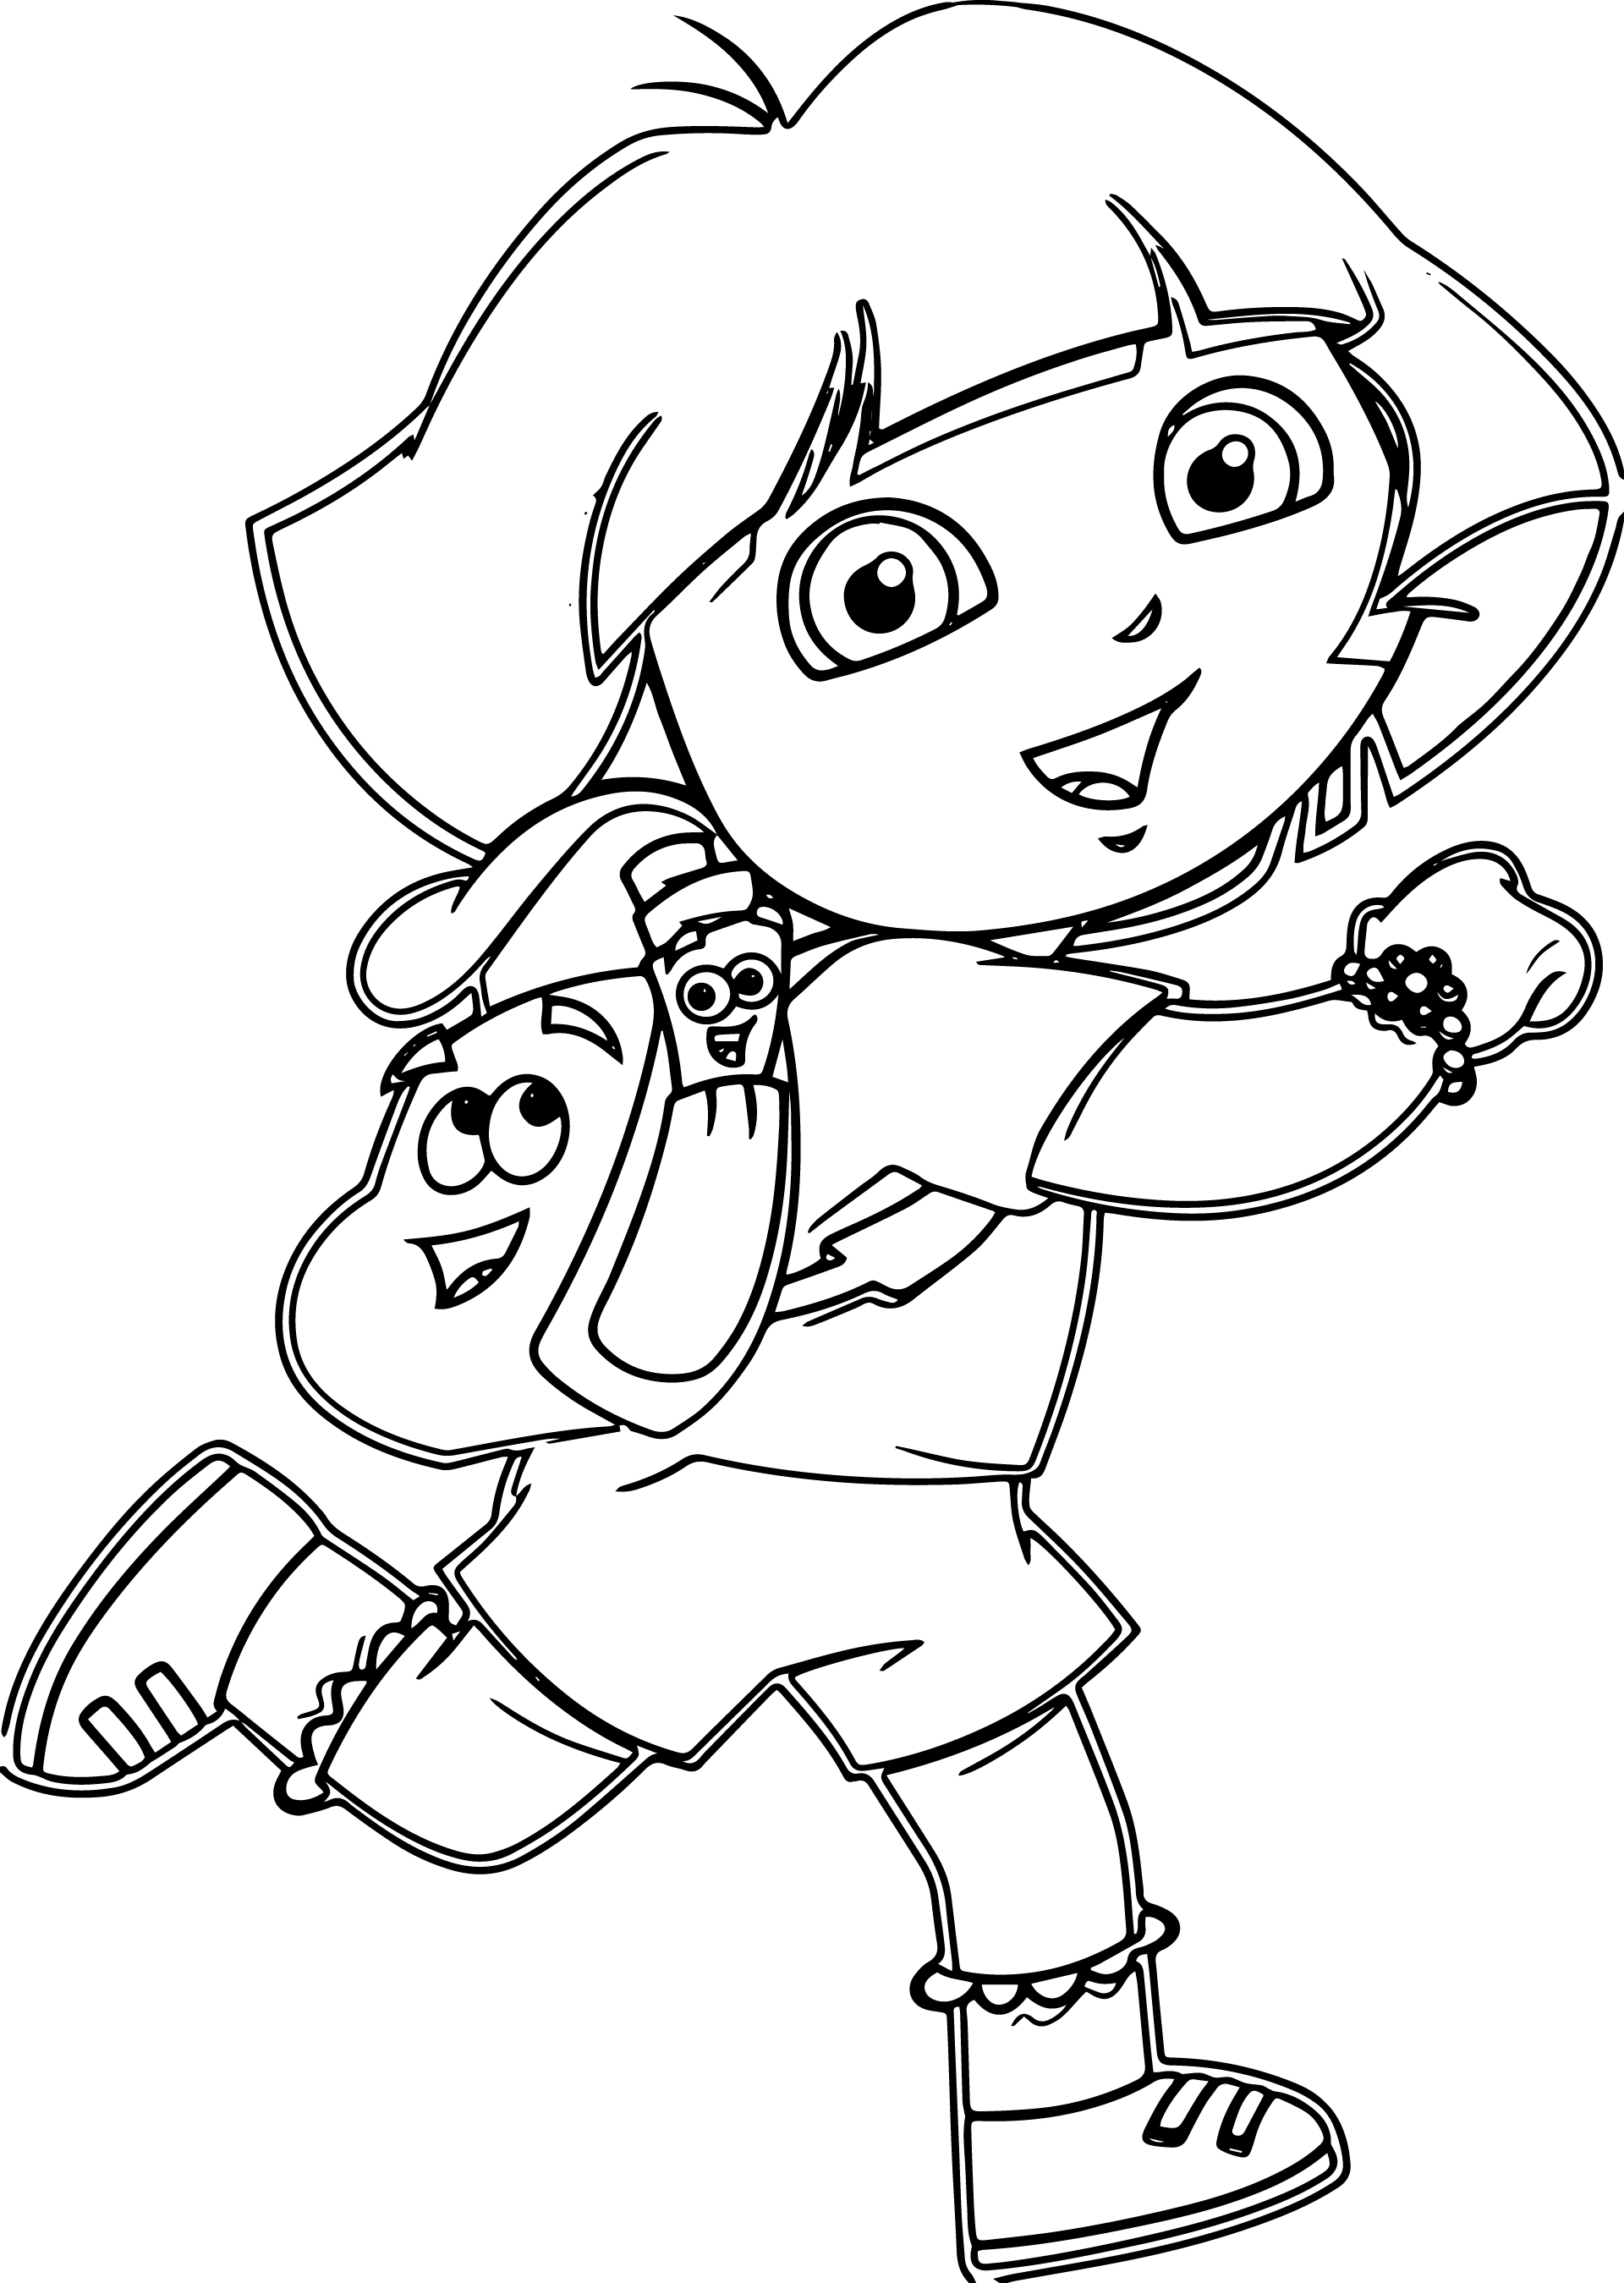 free coloring pages dora best beautiful princess dora the explorer coloring pages free dora pages coloring